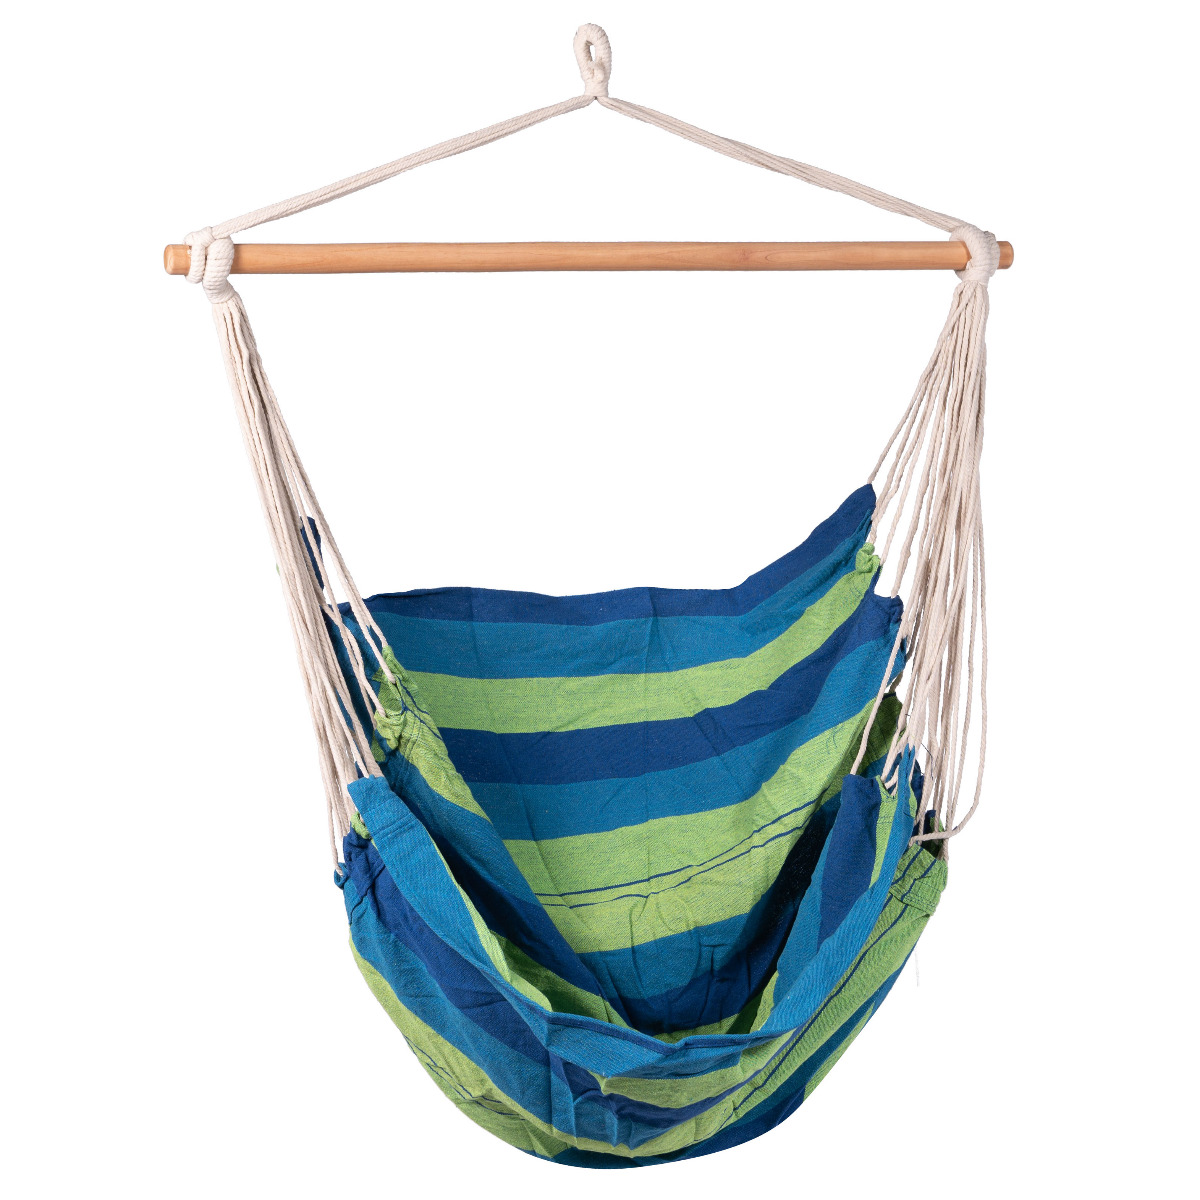 'Pine' Single Hangstoel - Veelkleurig - 123 Hammock